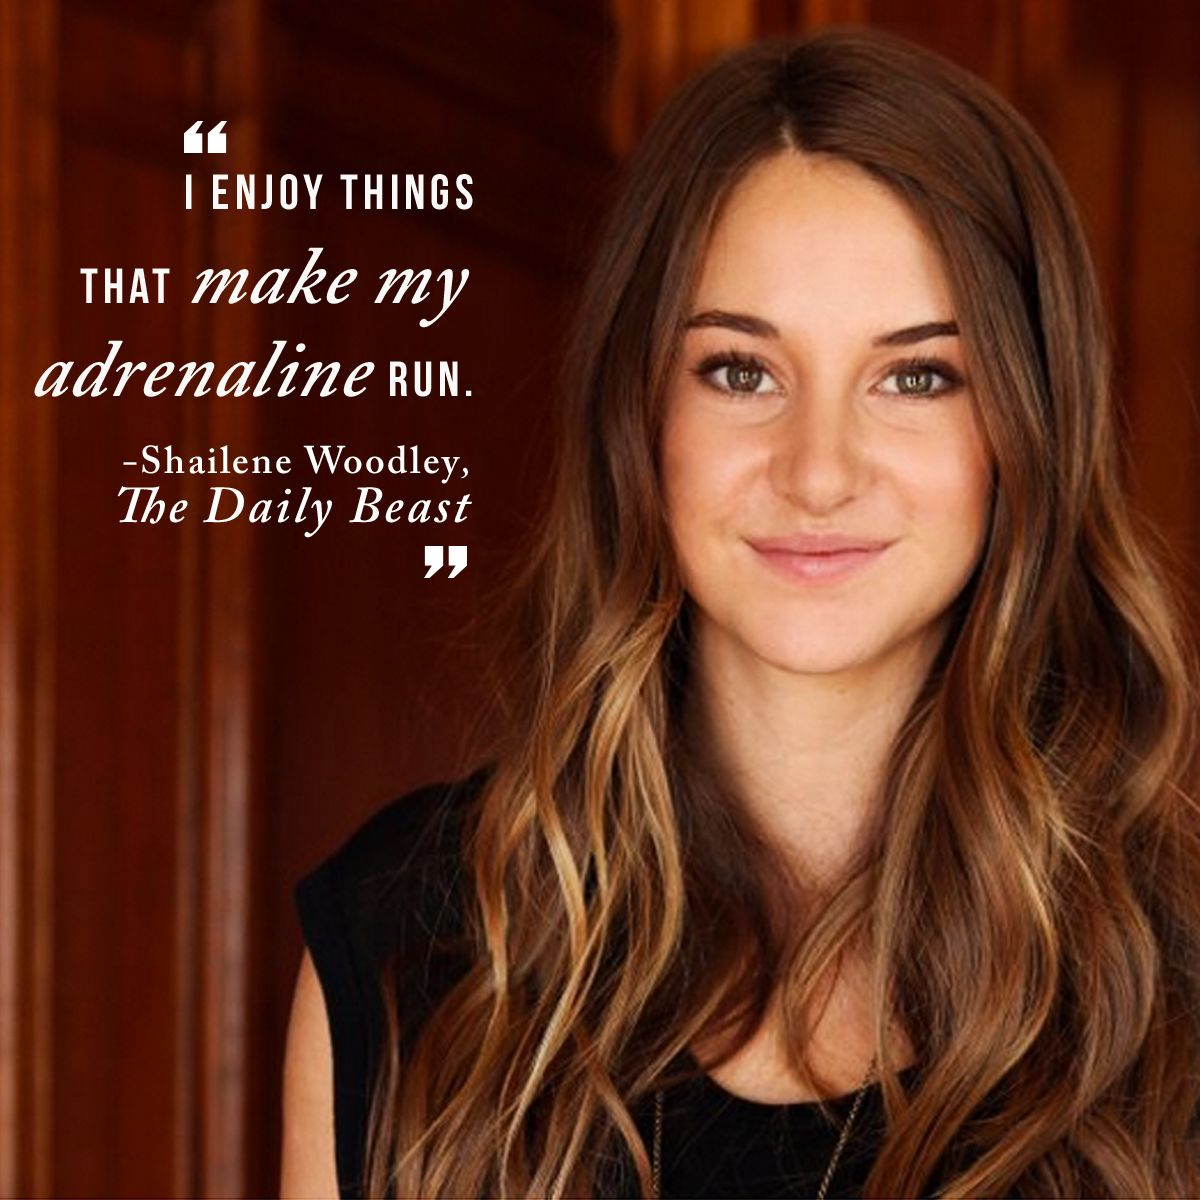 Brave. Selfless. Kind. Smart. Honest. Shailene Woodley is a little bit of everything. Check out her interview on @Matty Chuah Daily Beast!